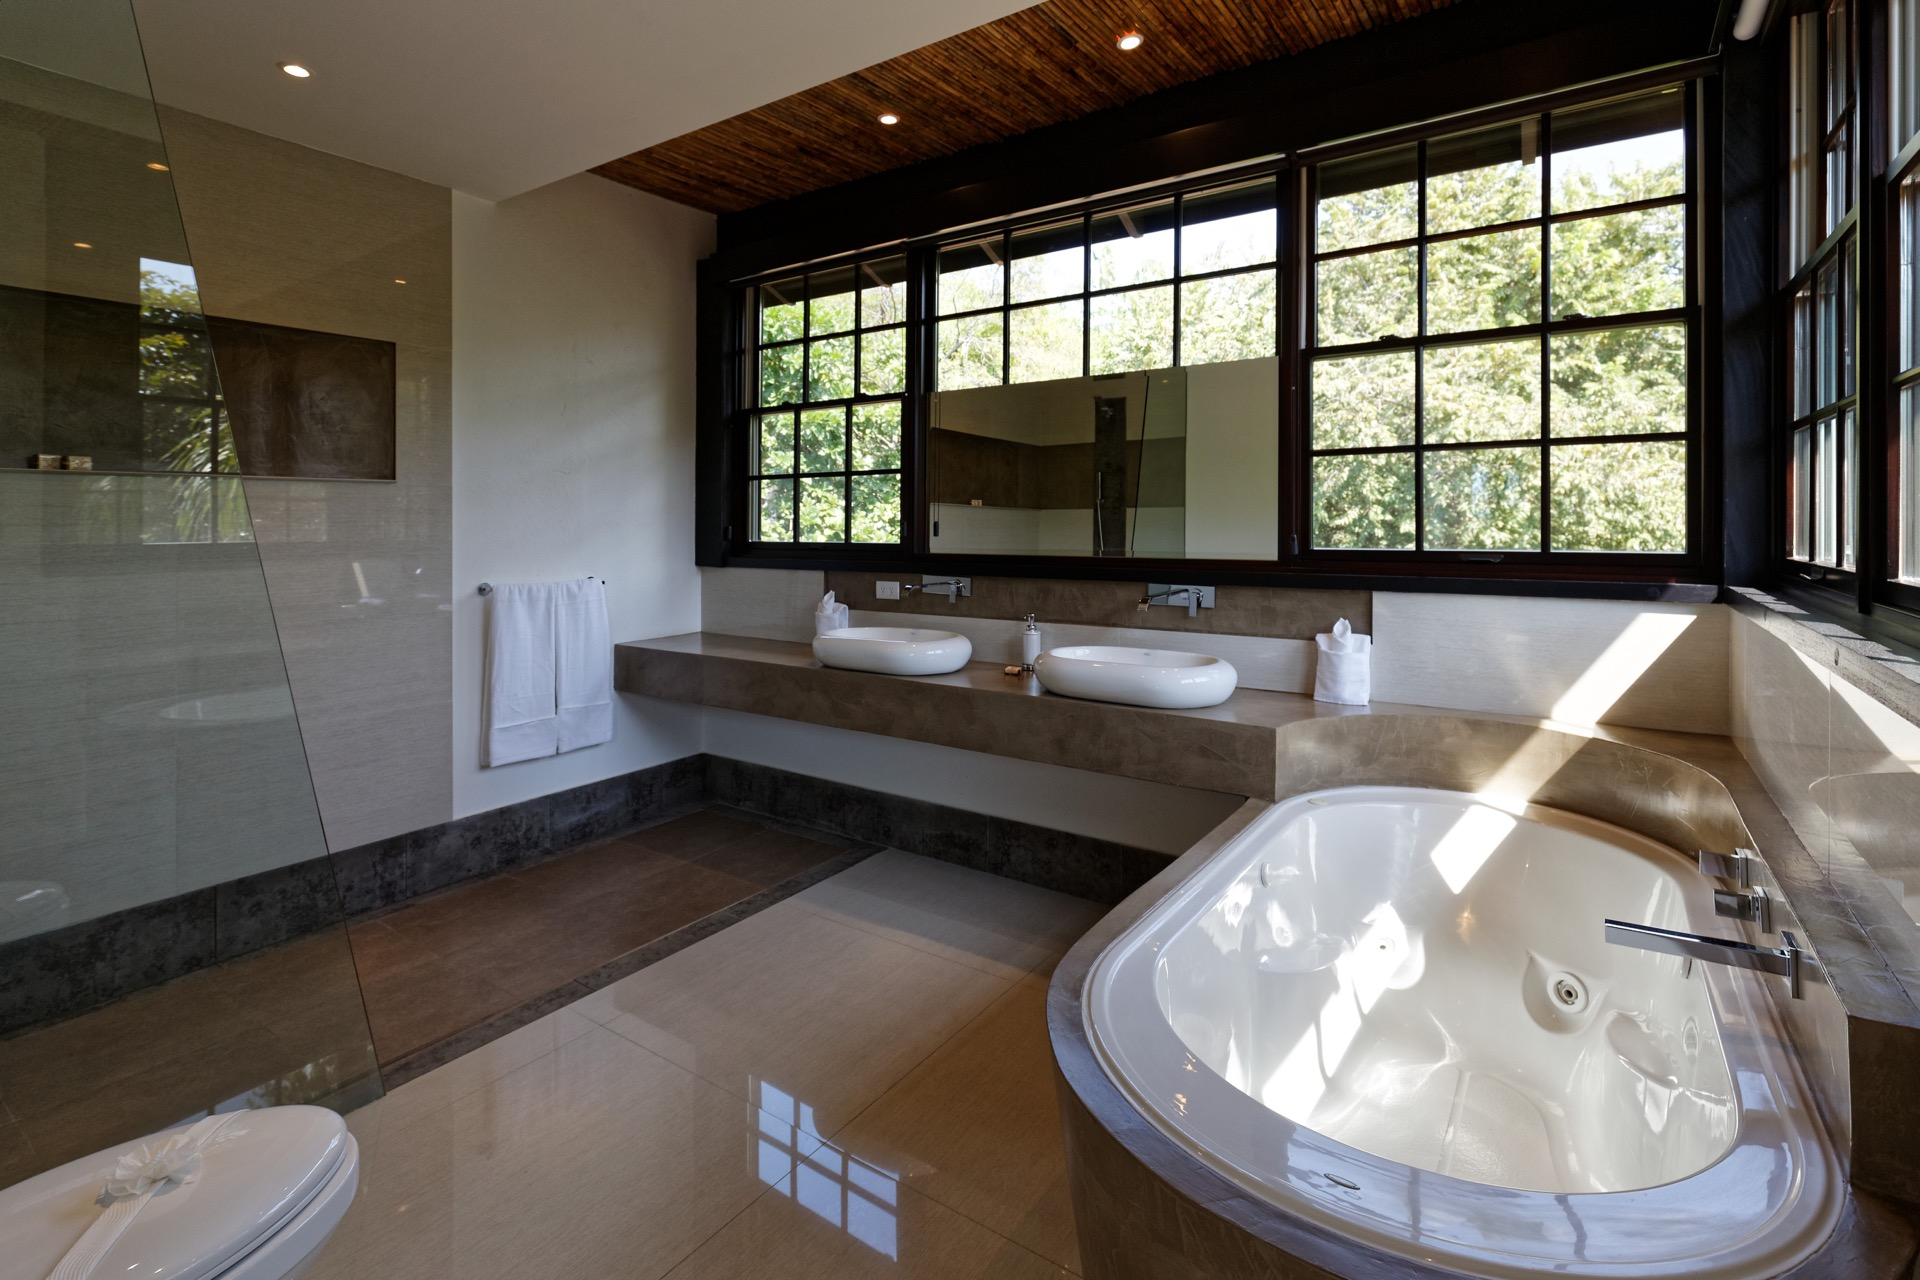 Complete bathroom with tub and shower